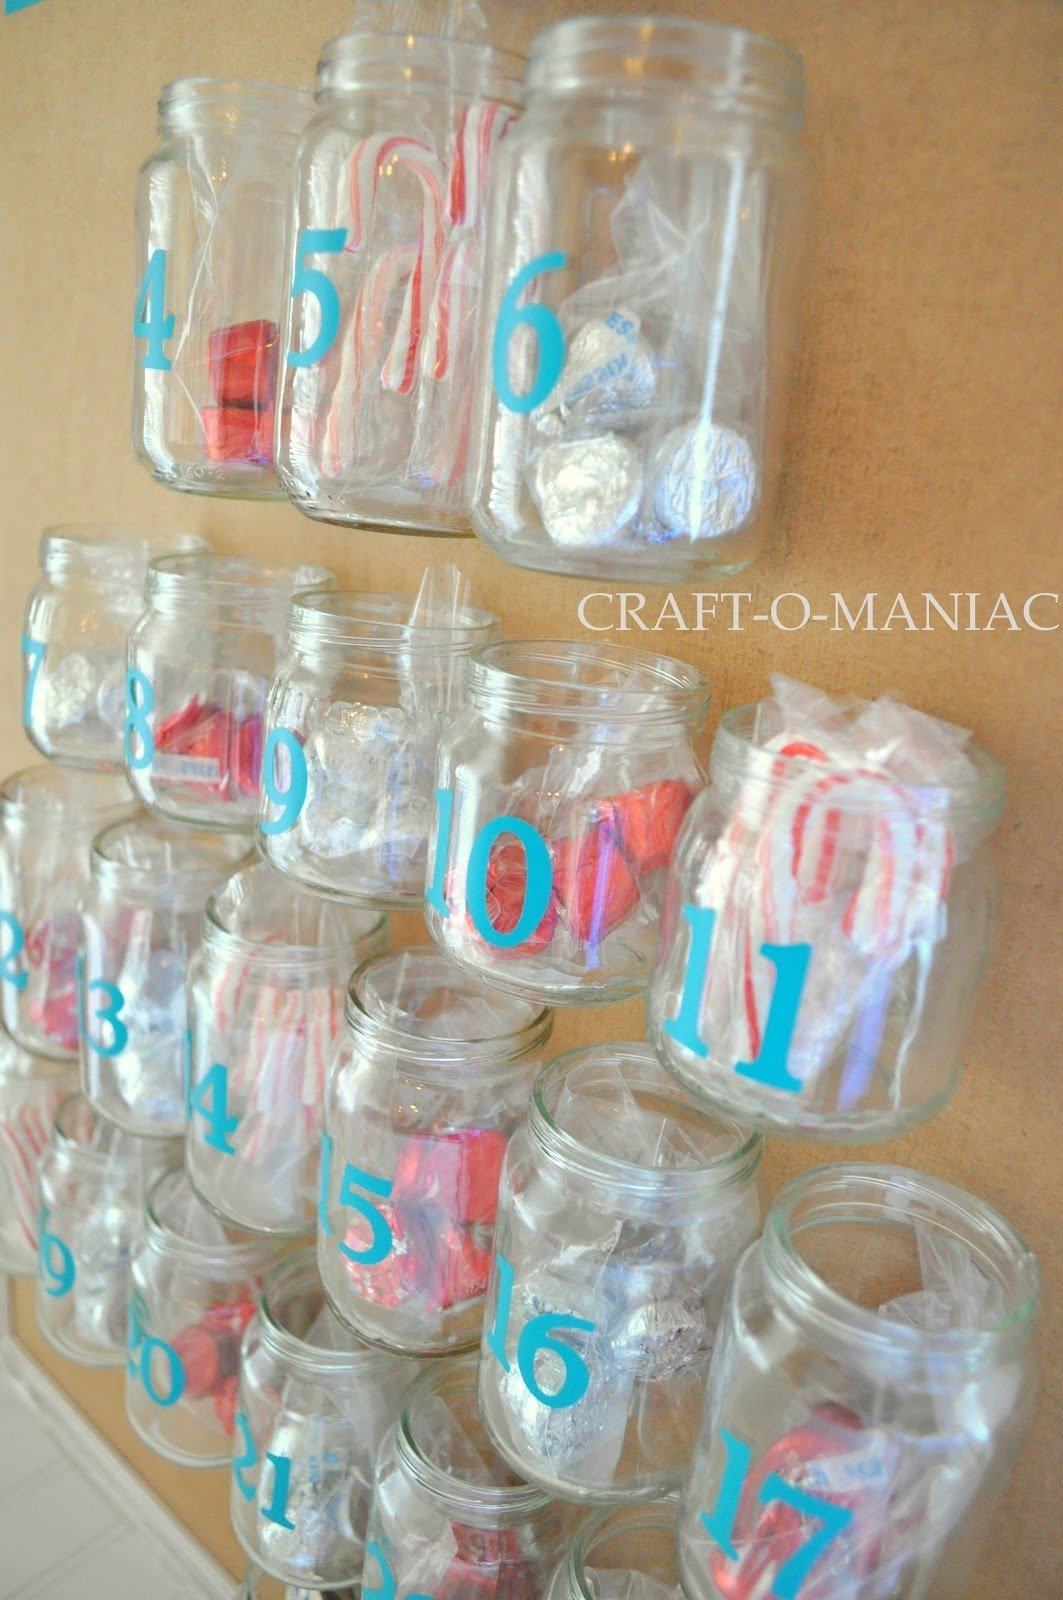 10 Great Craft Ideas For Baby Food Jars advent calender from recycled baby food jars craft o maniac 2020